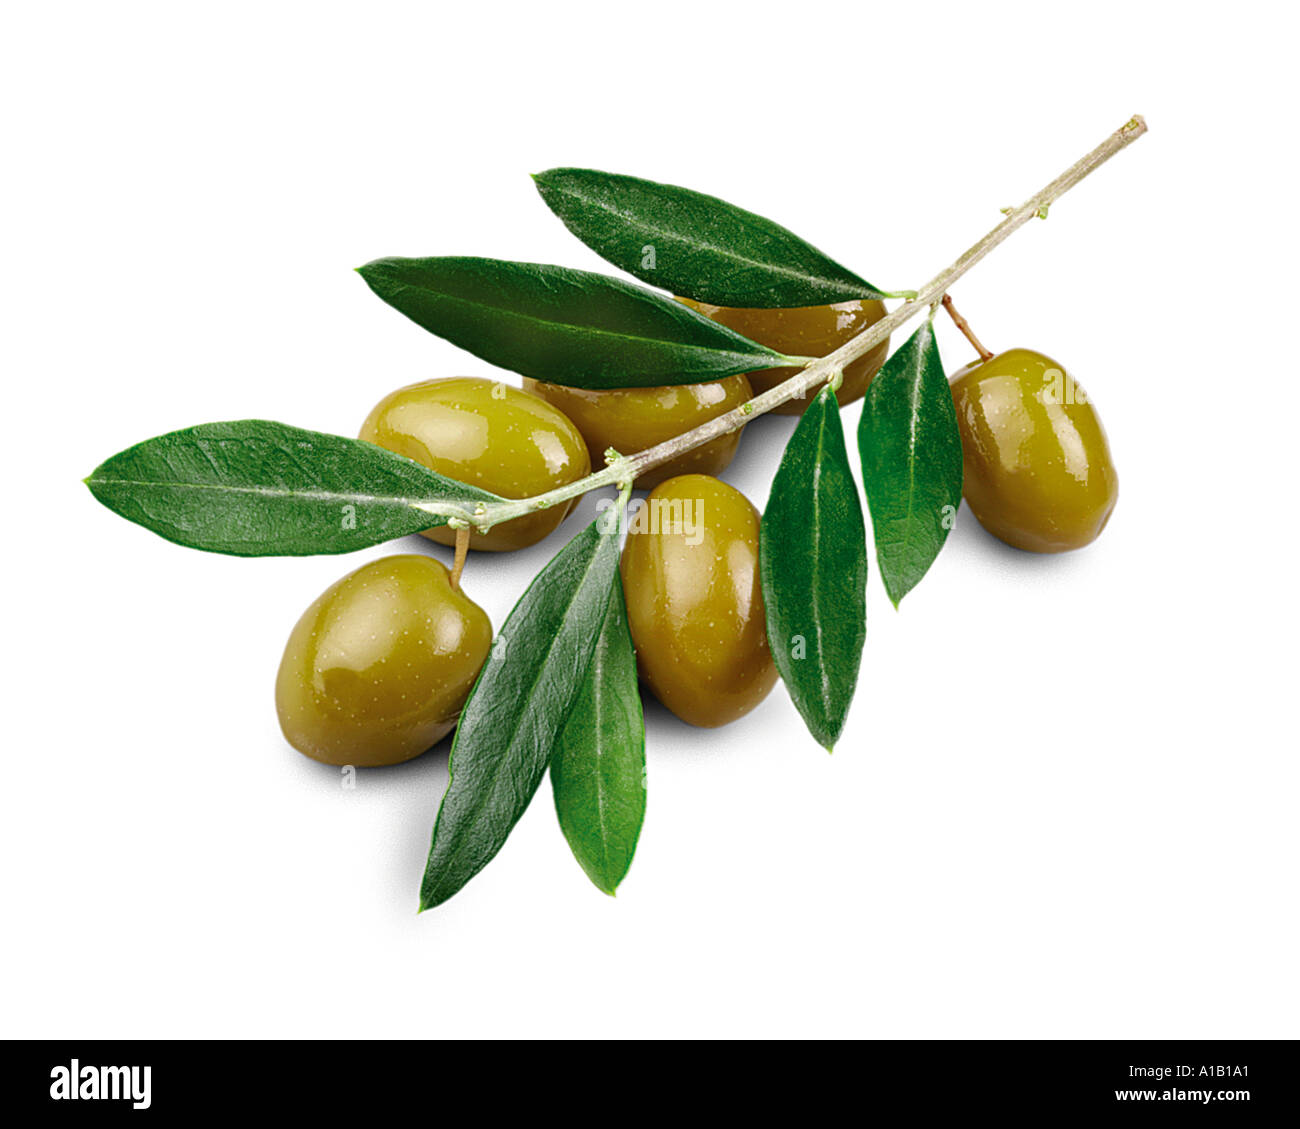 Olives vertes sur branch Photo Stock